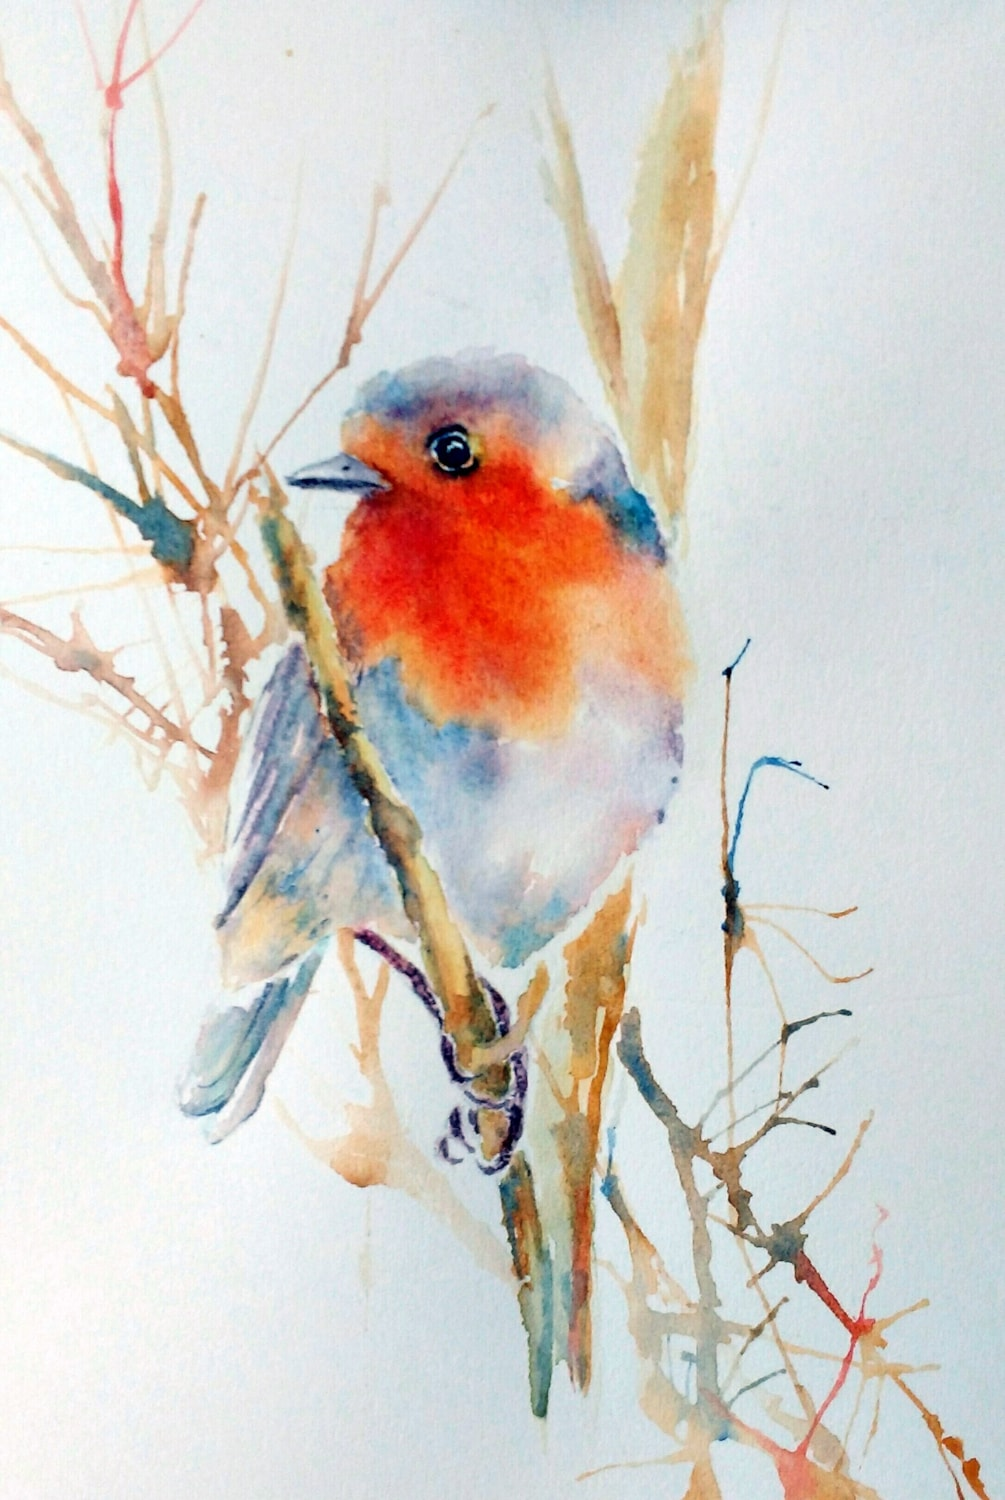 Robins are not just for Christmas